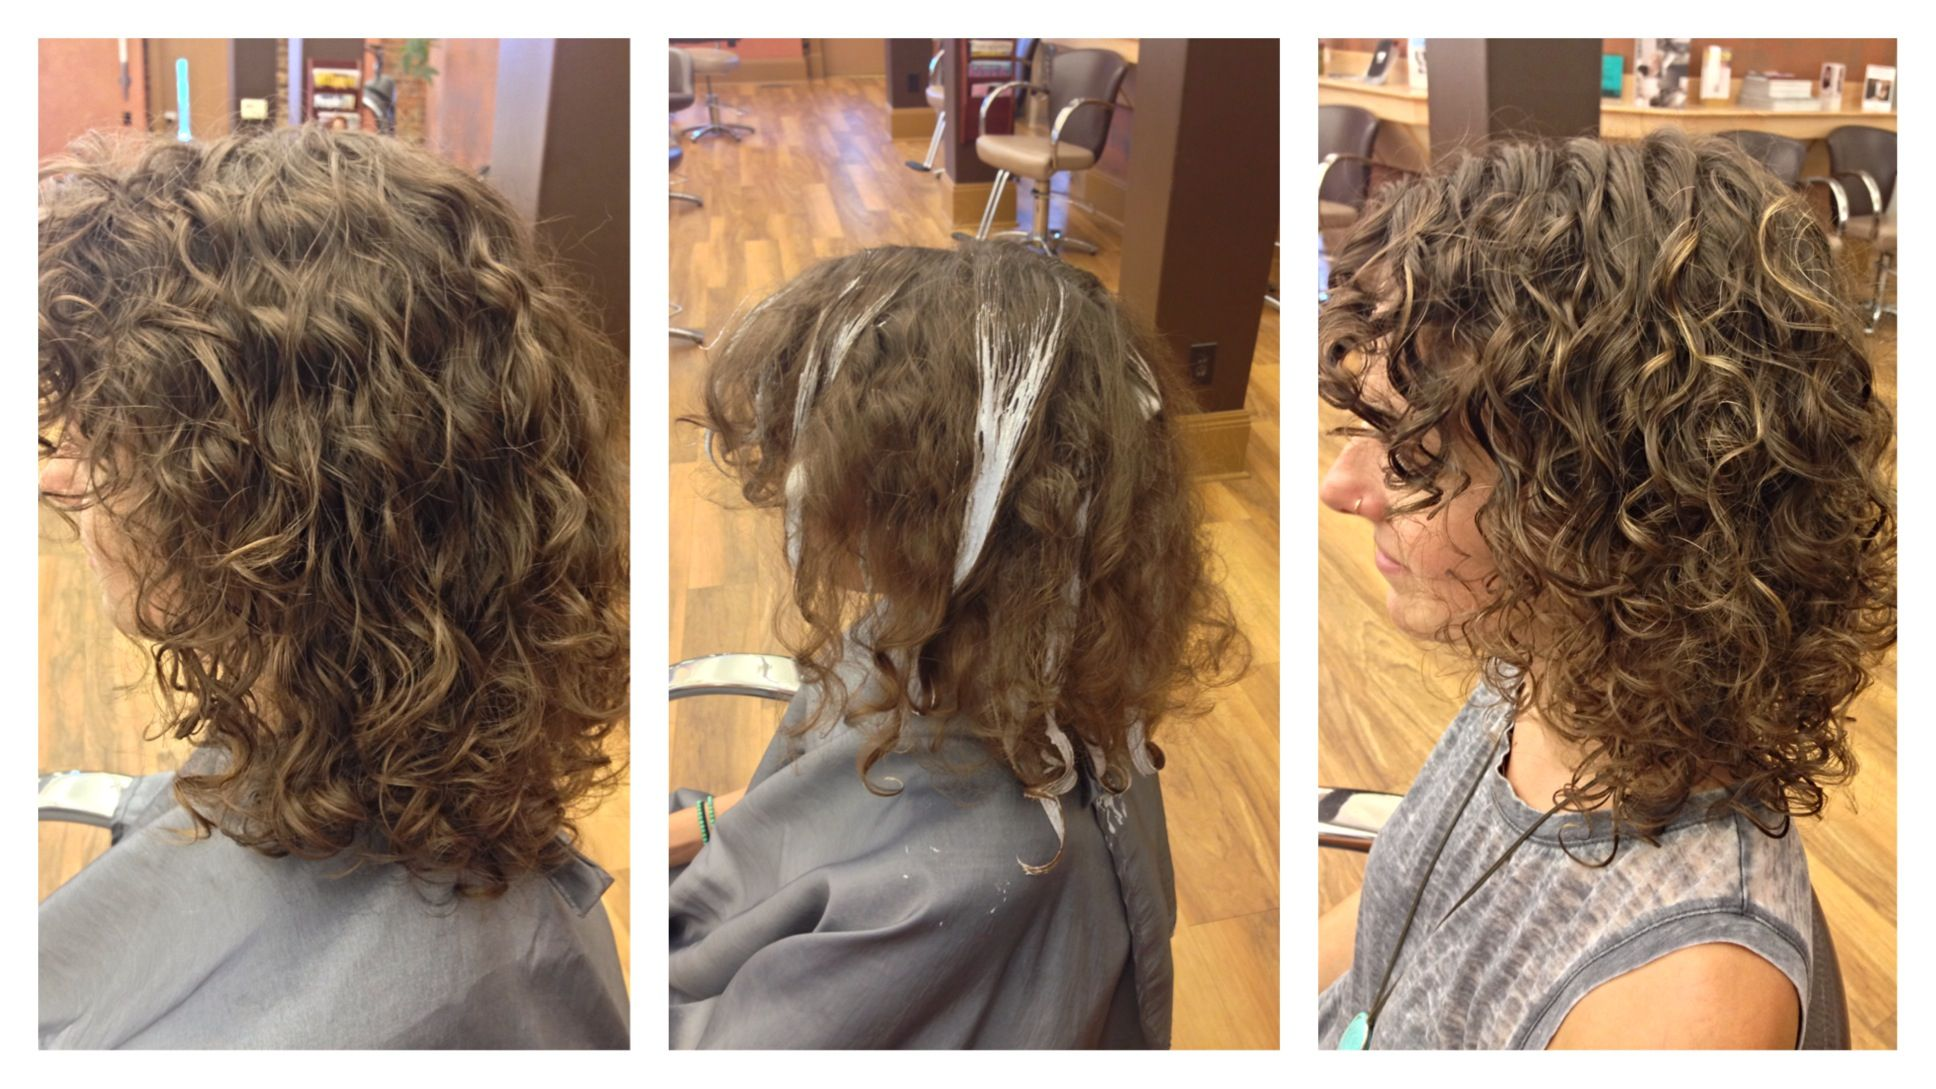 Before During And After Balayage Highlights In Curly Hair Subtle Natural